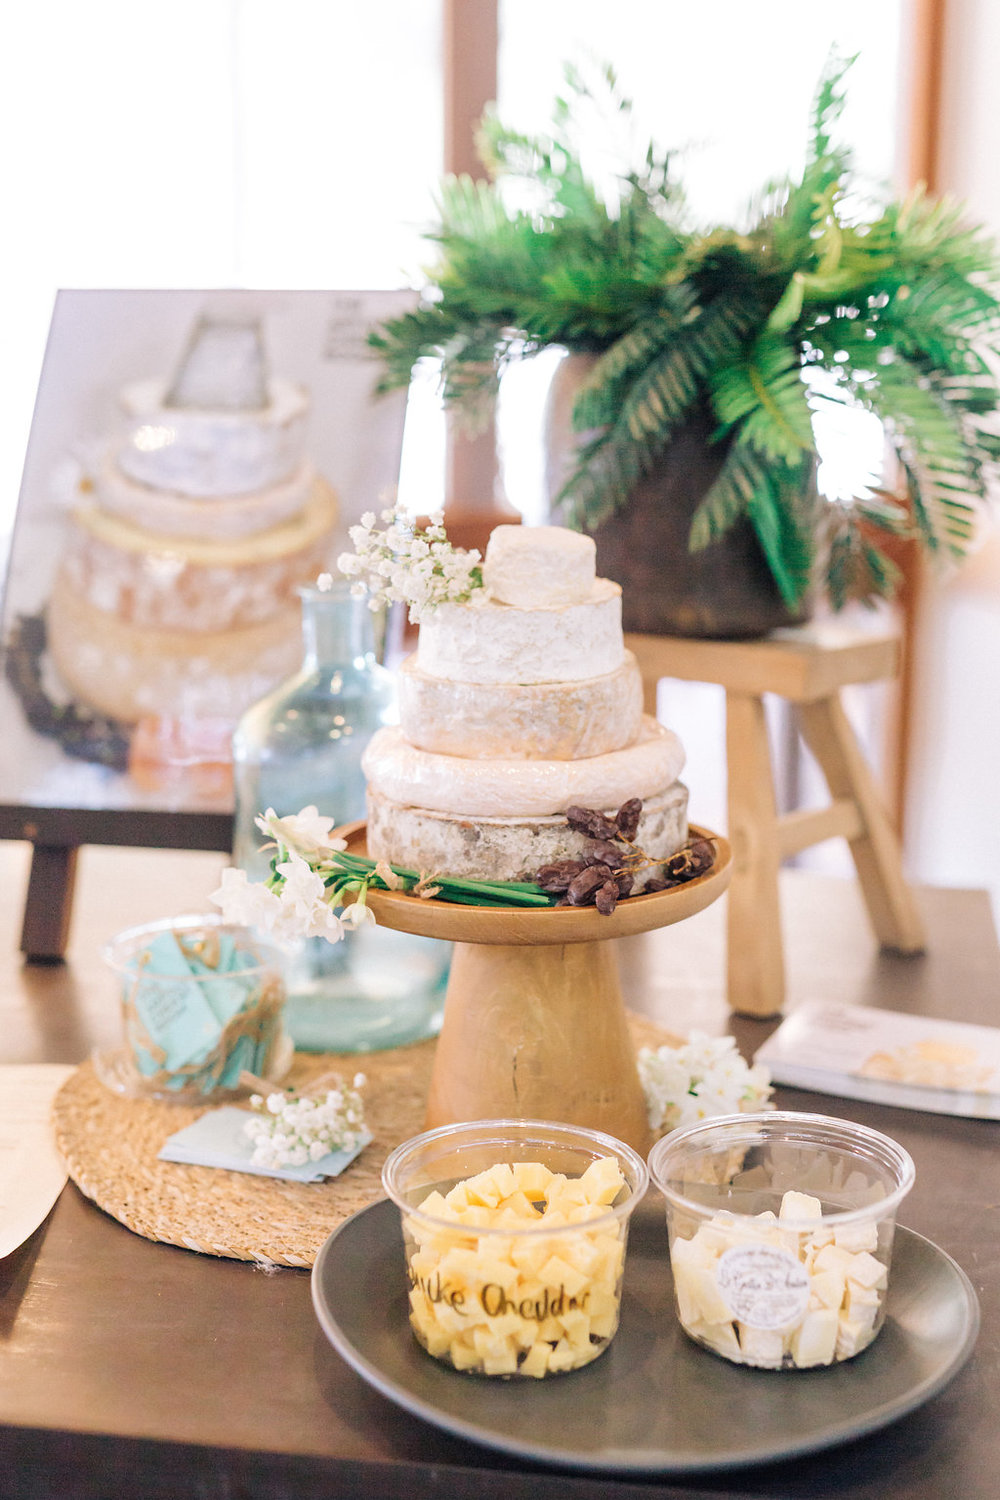 Pilu-Wedding-Cheese-Table-Prop-Hire.jpg